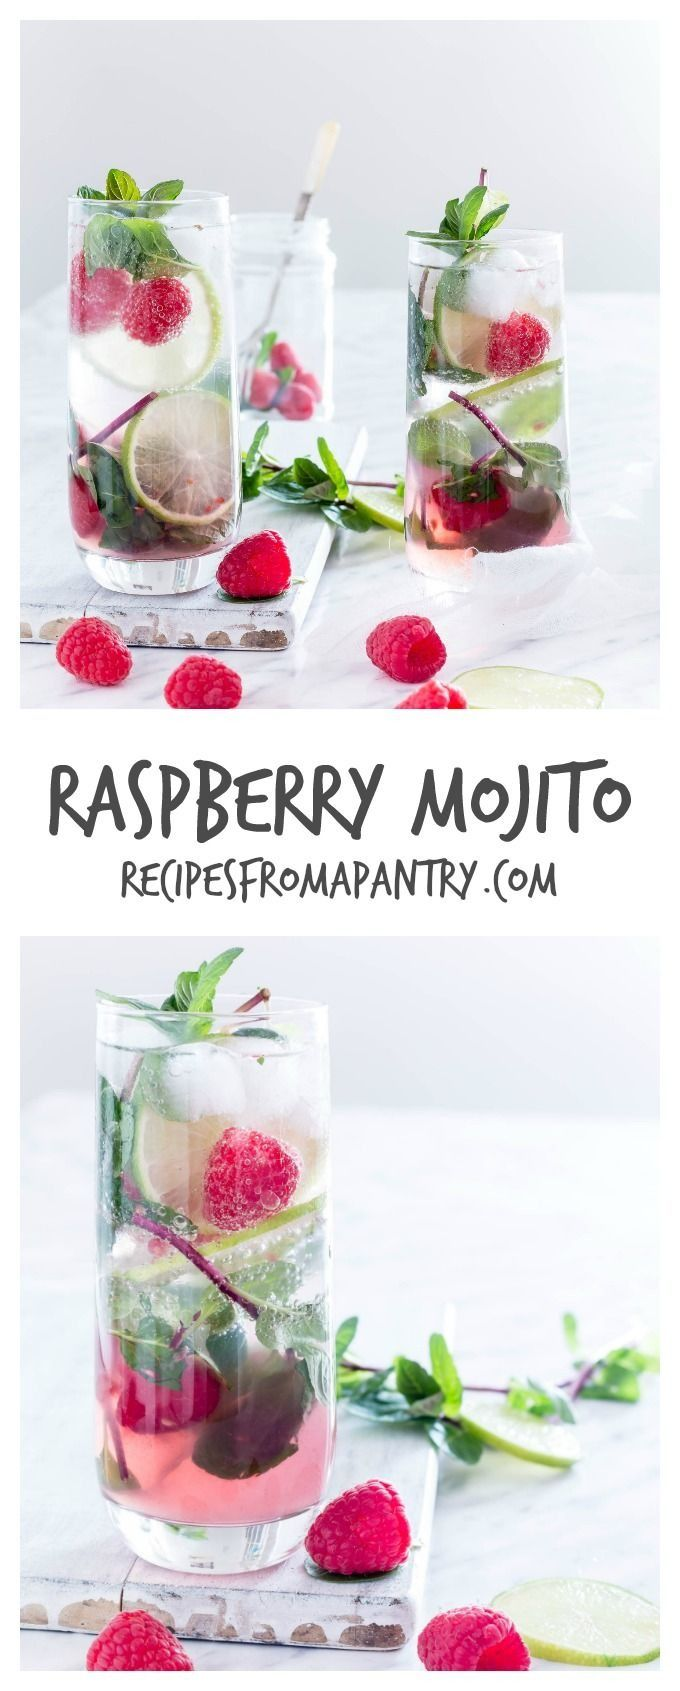 Rasbberry Mojito - Refreshing & simple raspberry mojito recipe made with 5 ingredients - fresh raspberries, mint, lime, white rum and soda water!